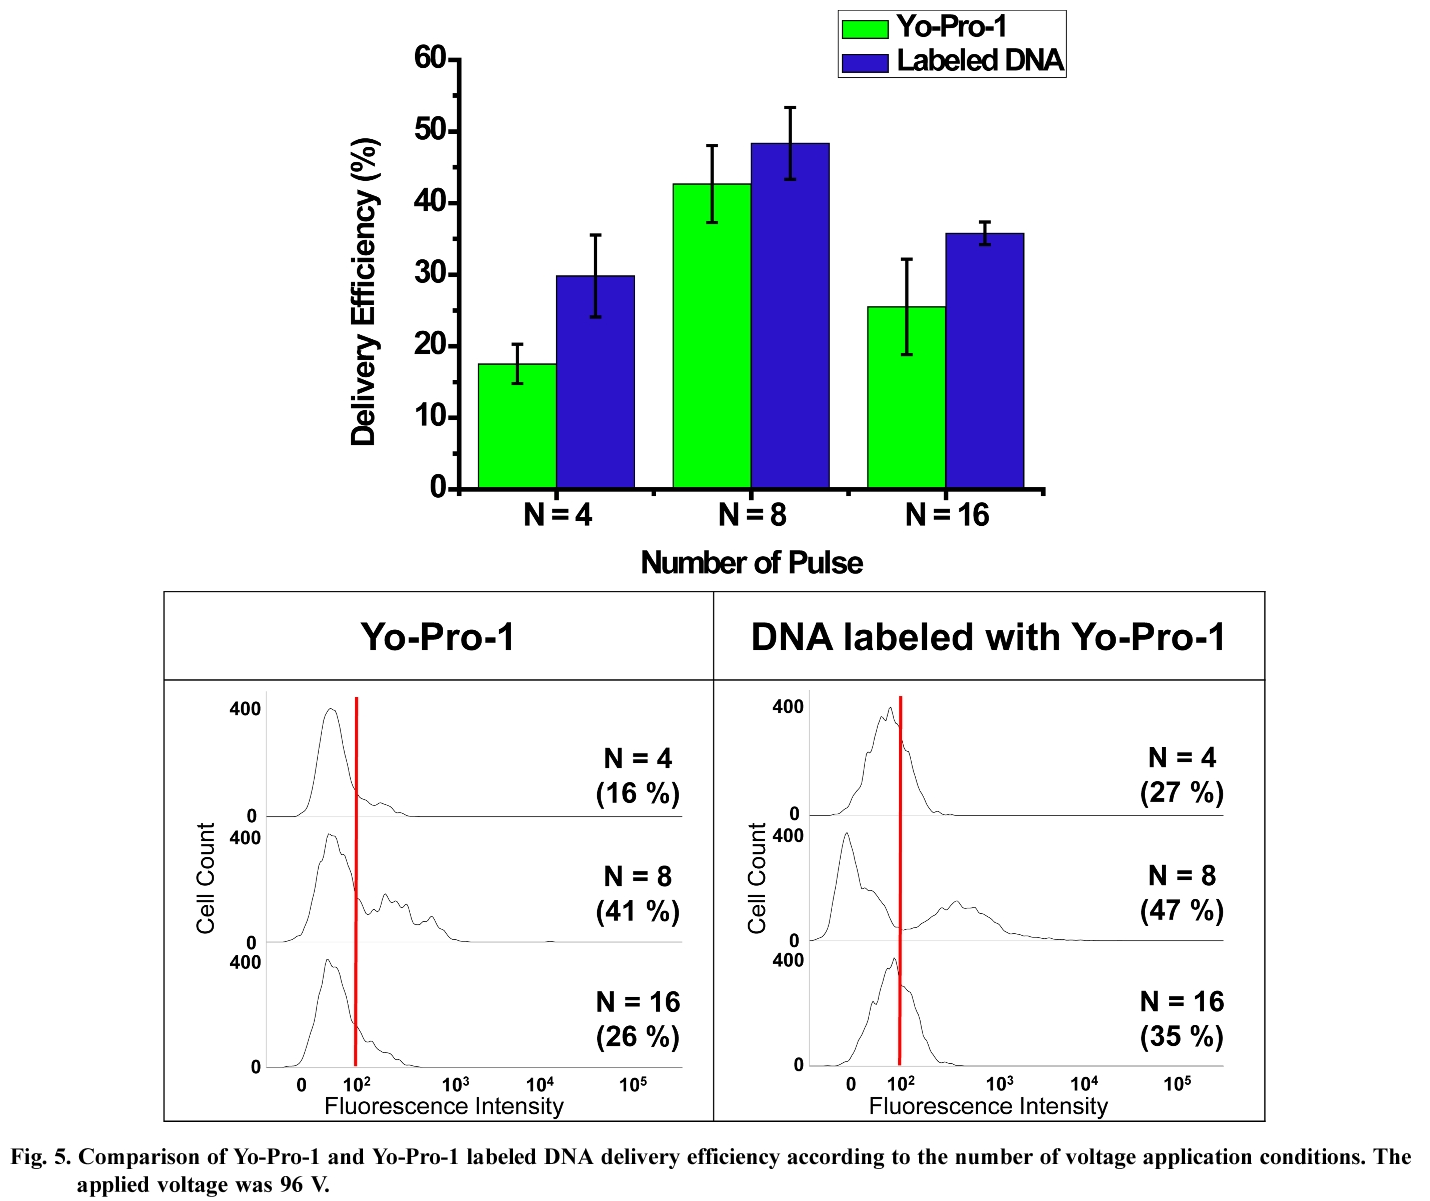 Fig. 5. Comparison of Yo-Pro-1 and Yo-Pro-1 labeled DNA delivery efficiency according to the number of voltage application conditions.